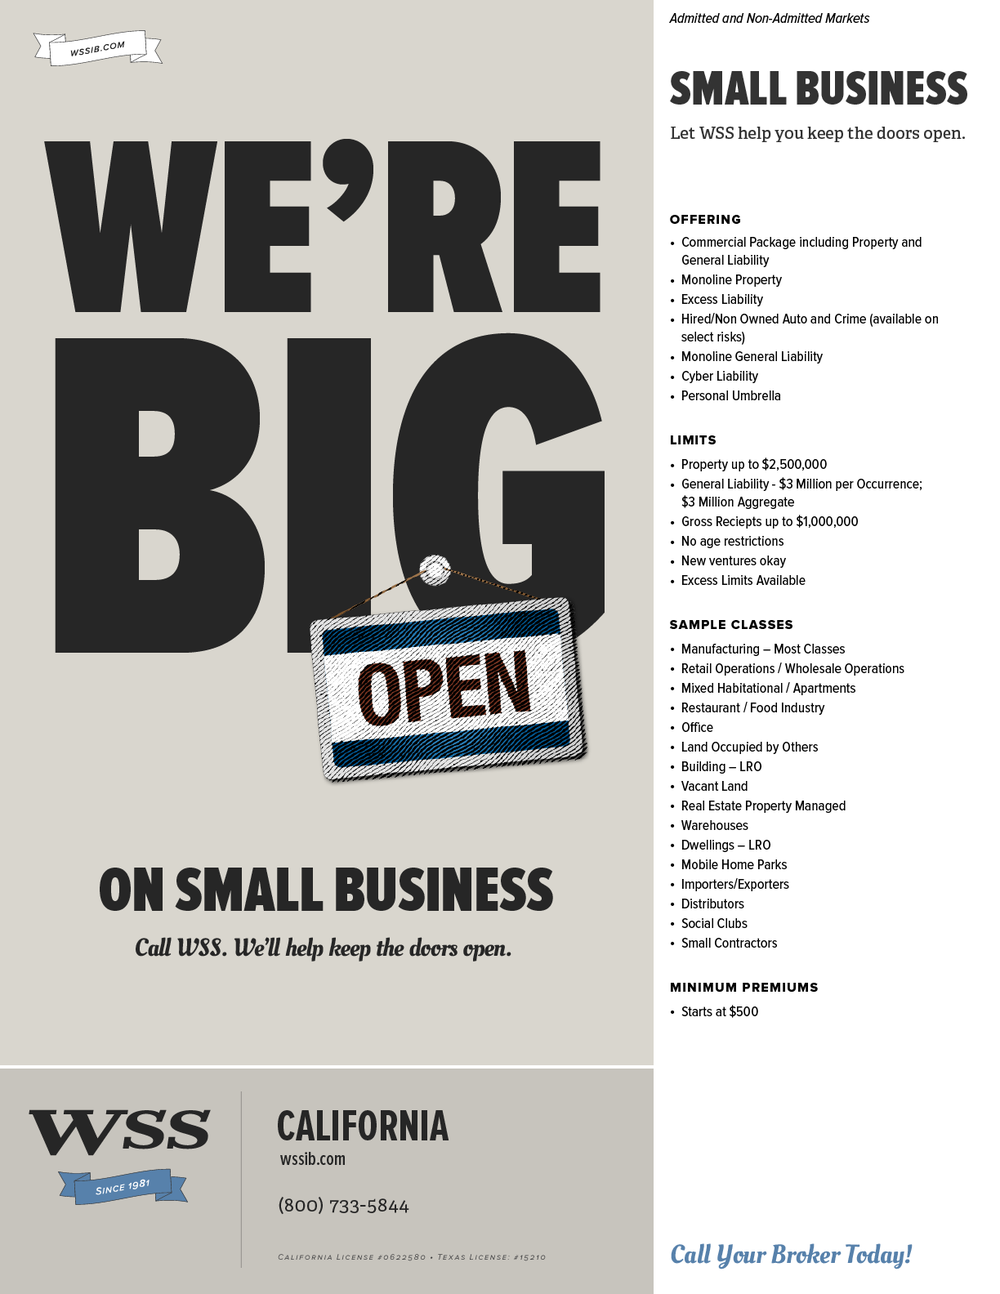 WSS-Flyer-SmallBusiness-CA.png